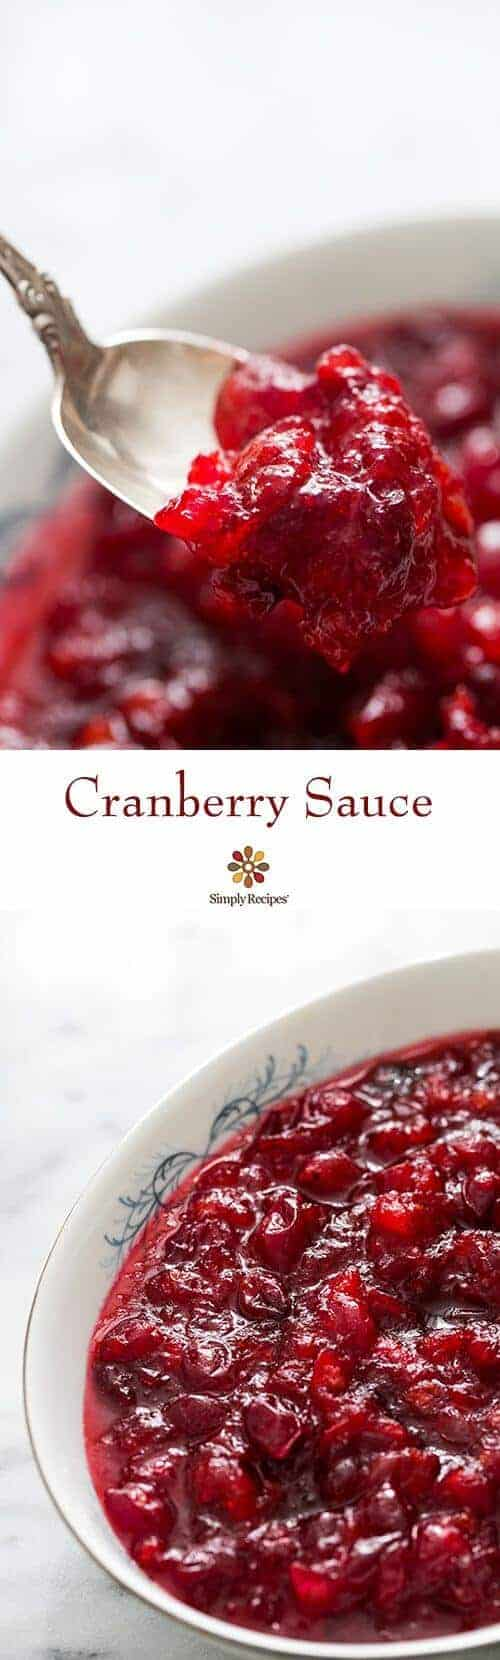 Cranberry Sauce by Simply Recipes